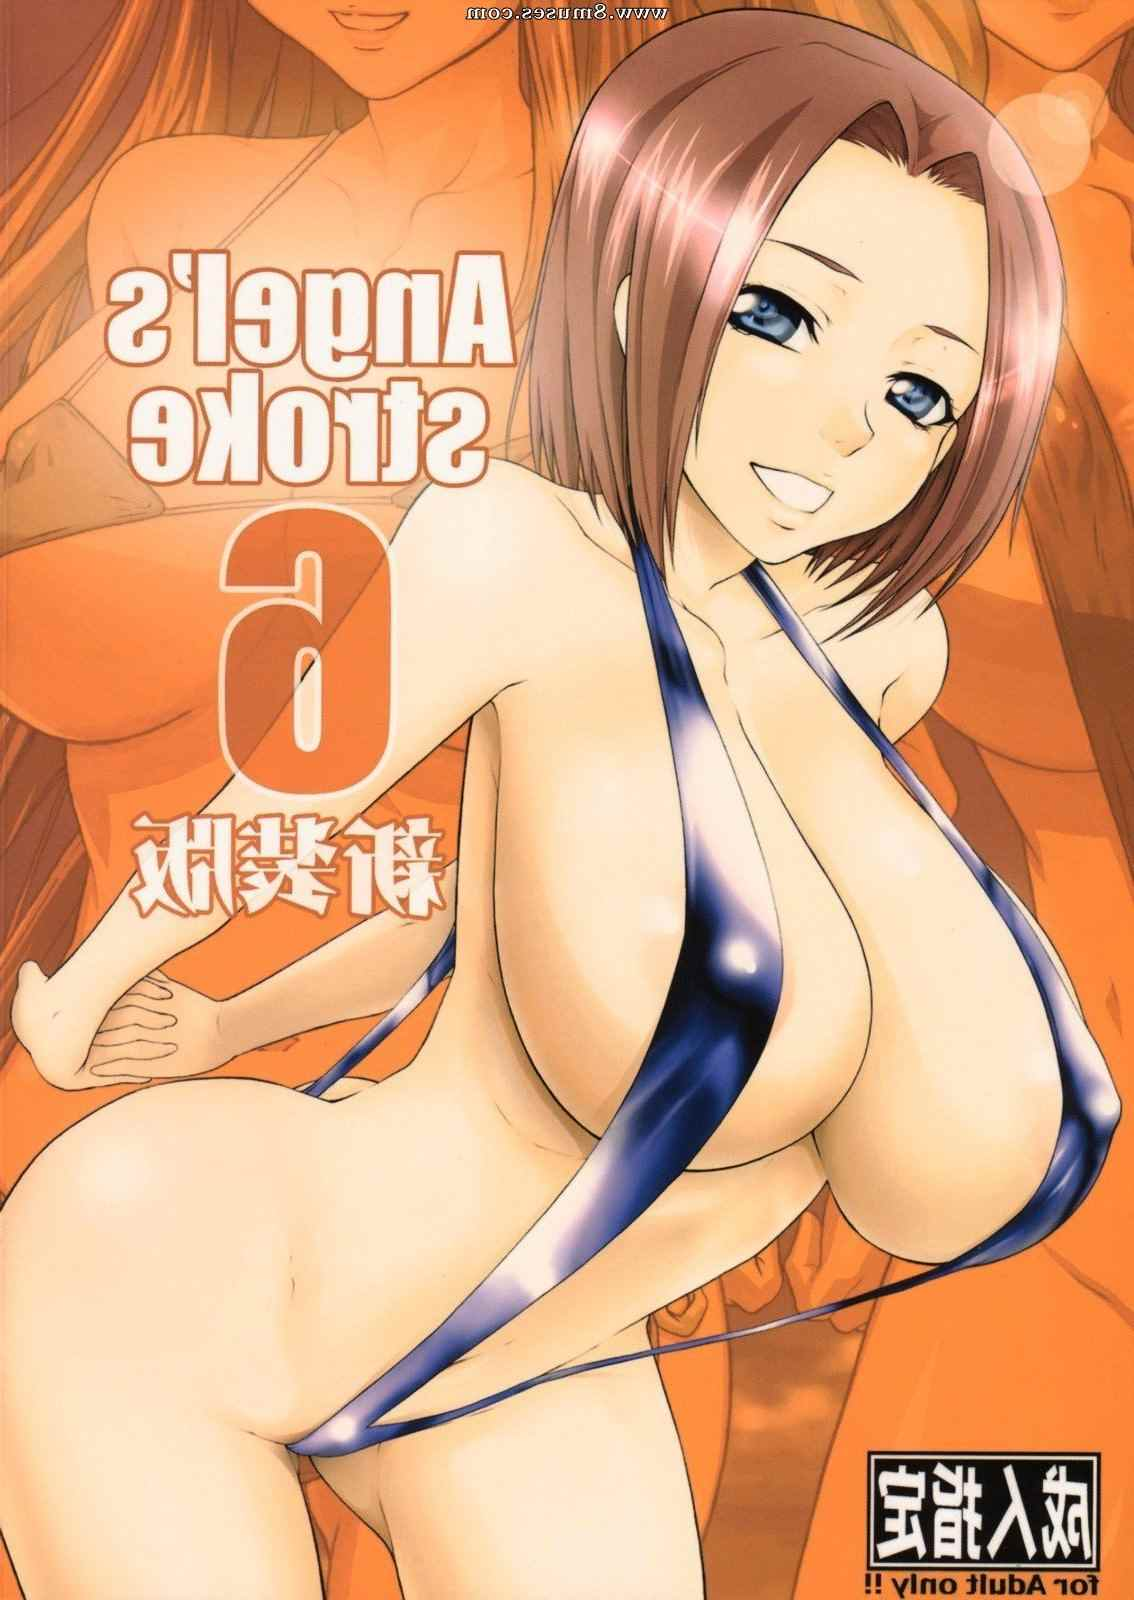 Hentai-and-Manga-English/Kutani/Manga Manga__8muses_-_Sex_and_Porn_Comics_10.jpg